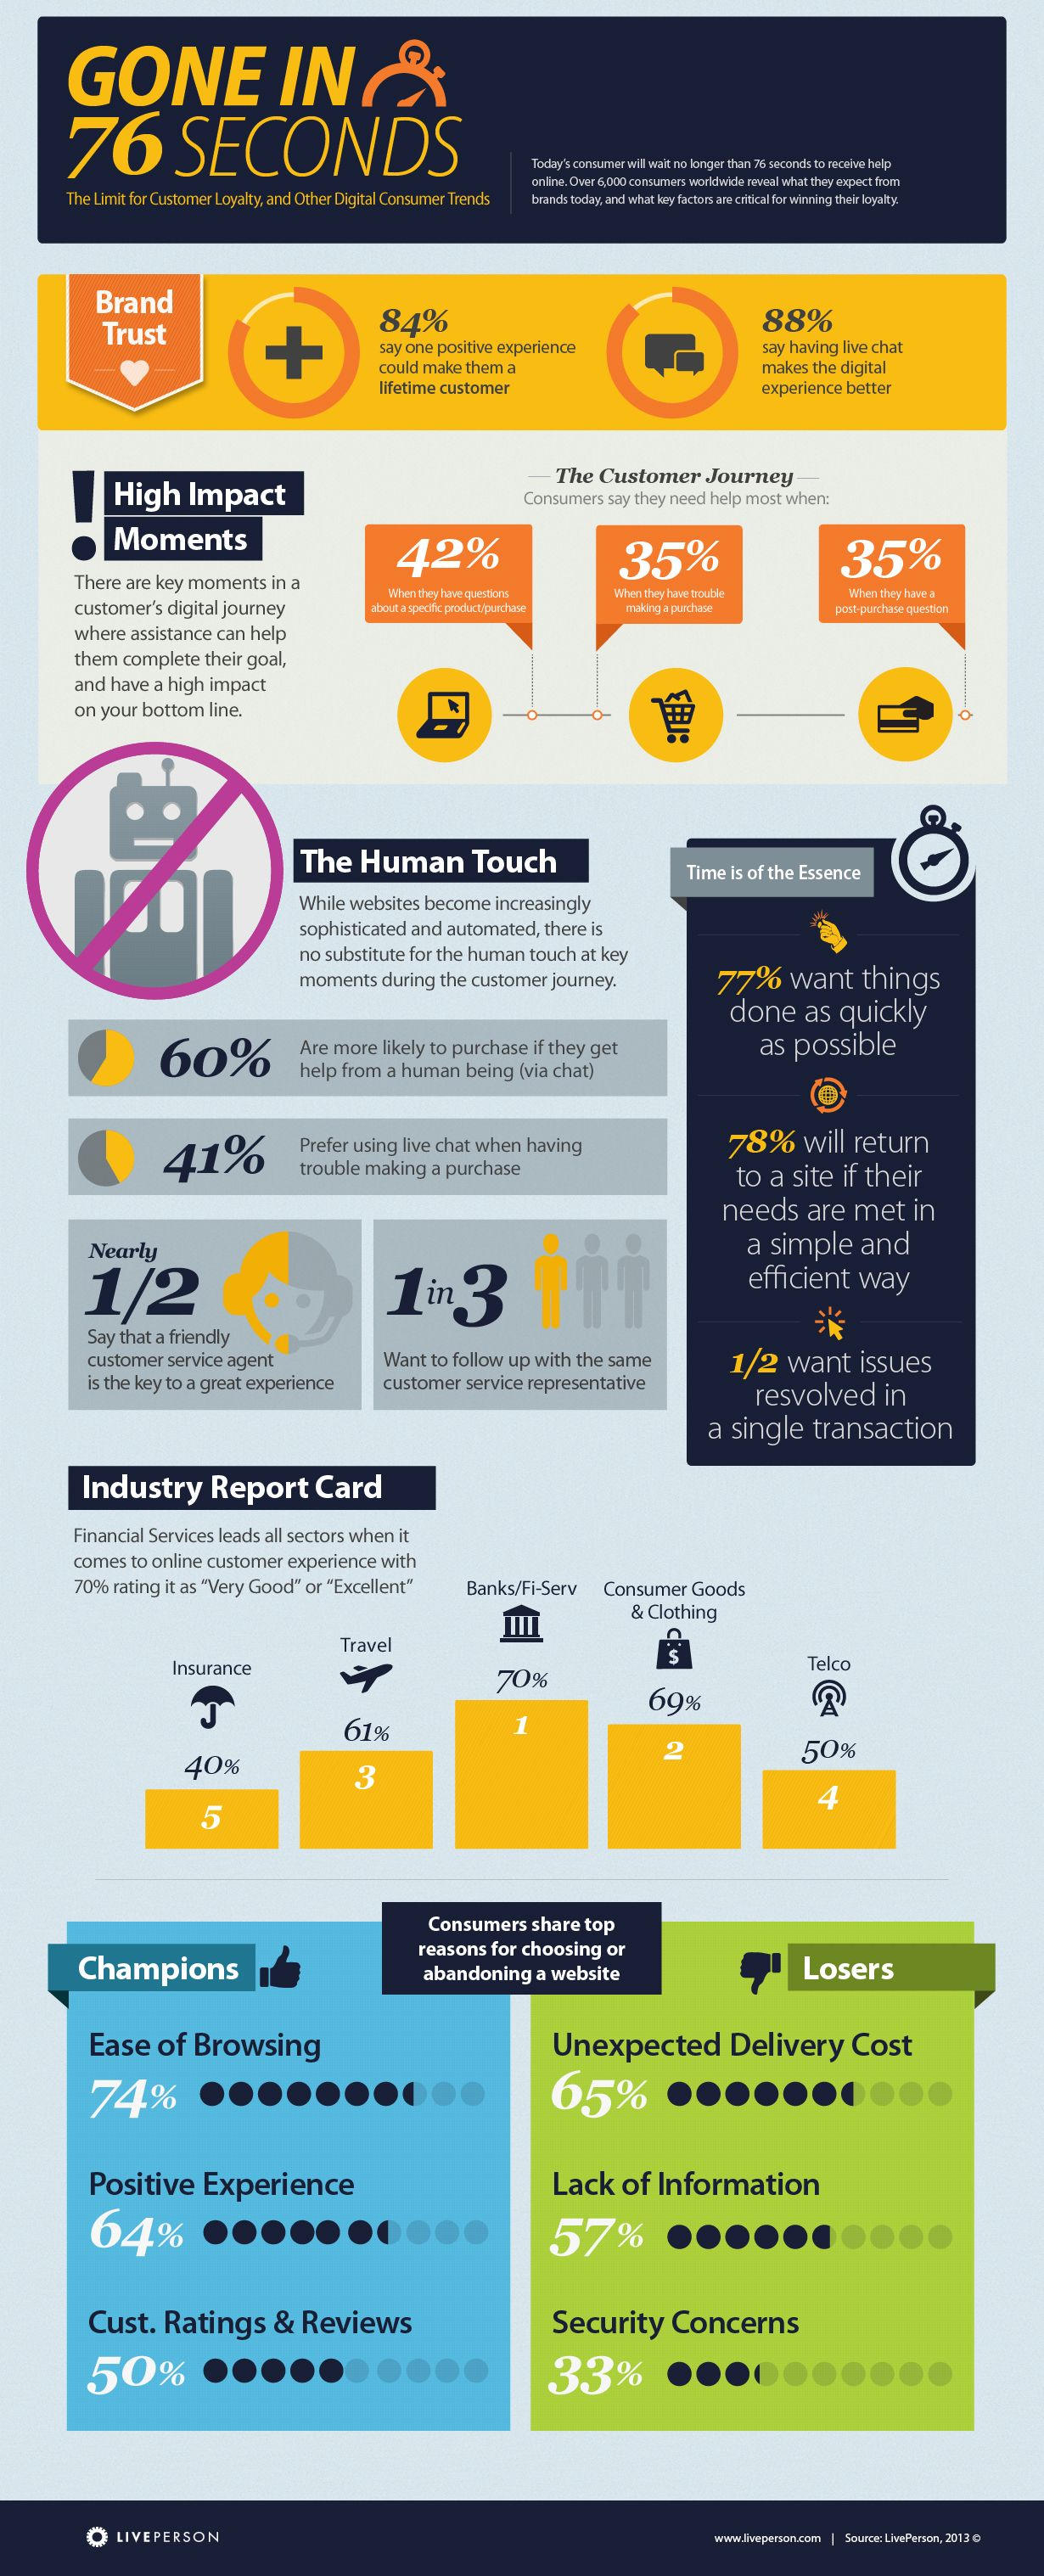 The Limit For Customer Loyalty And Other Digital Consumer Trends Consumer Insights Infographic Marketing Customer Insight